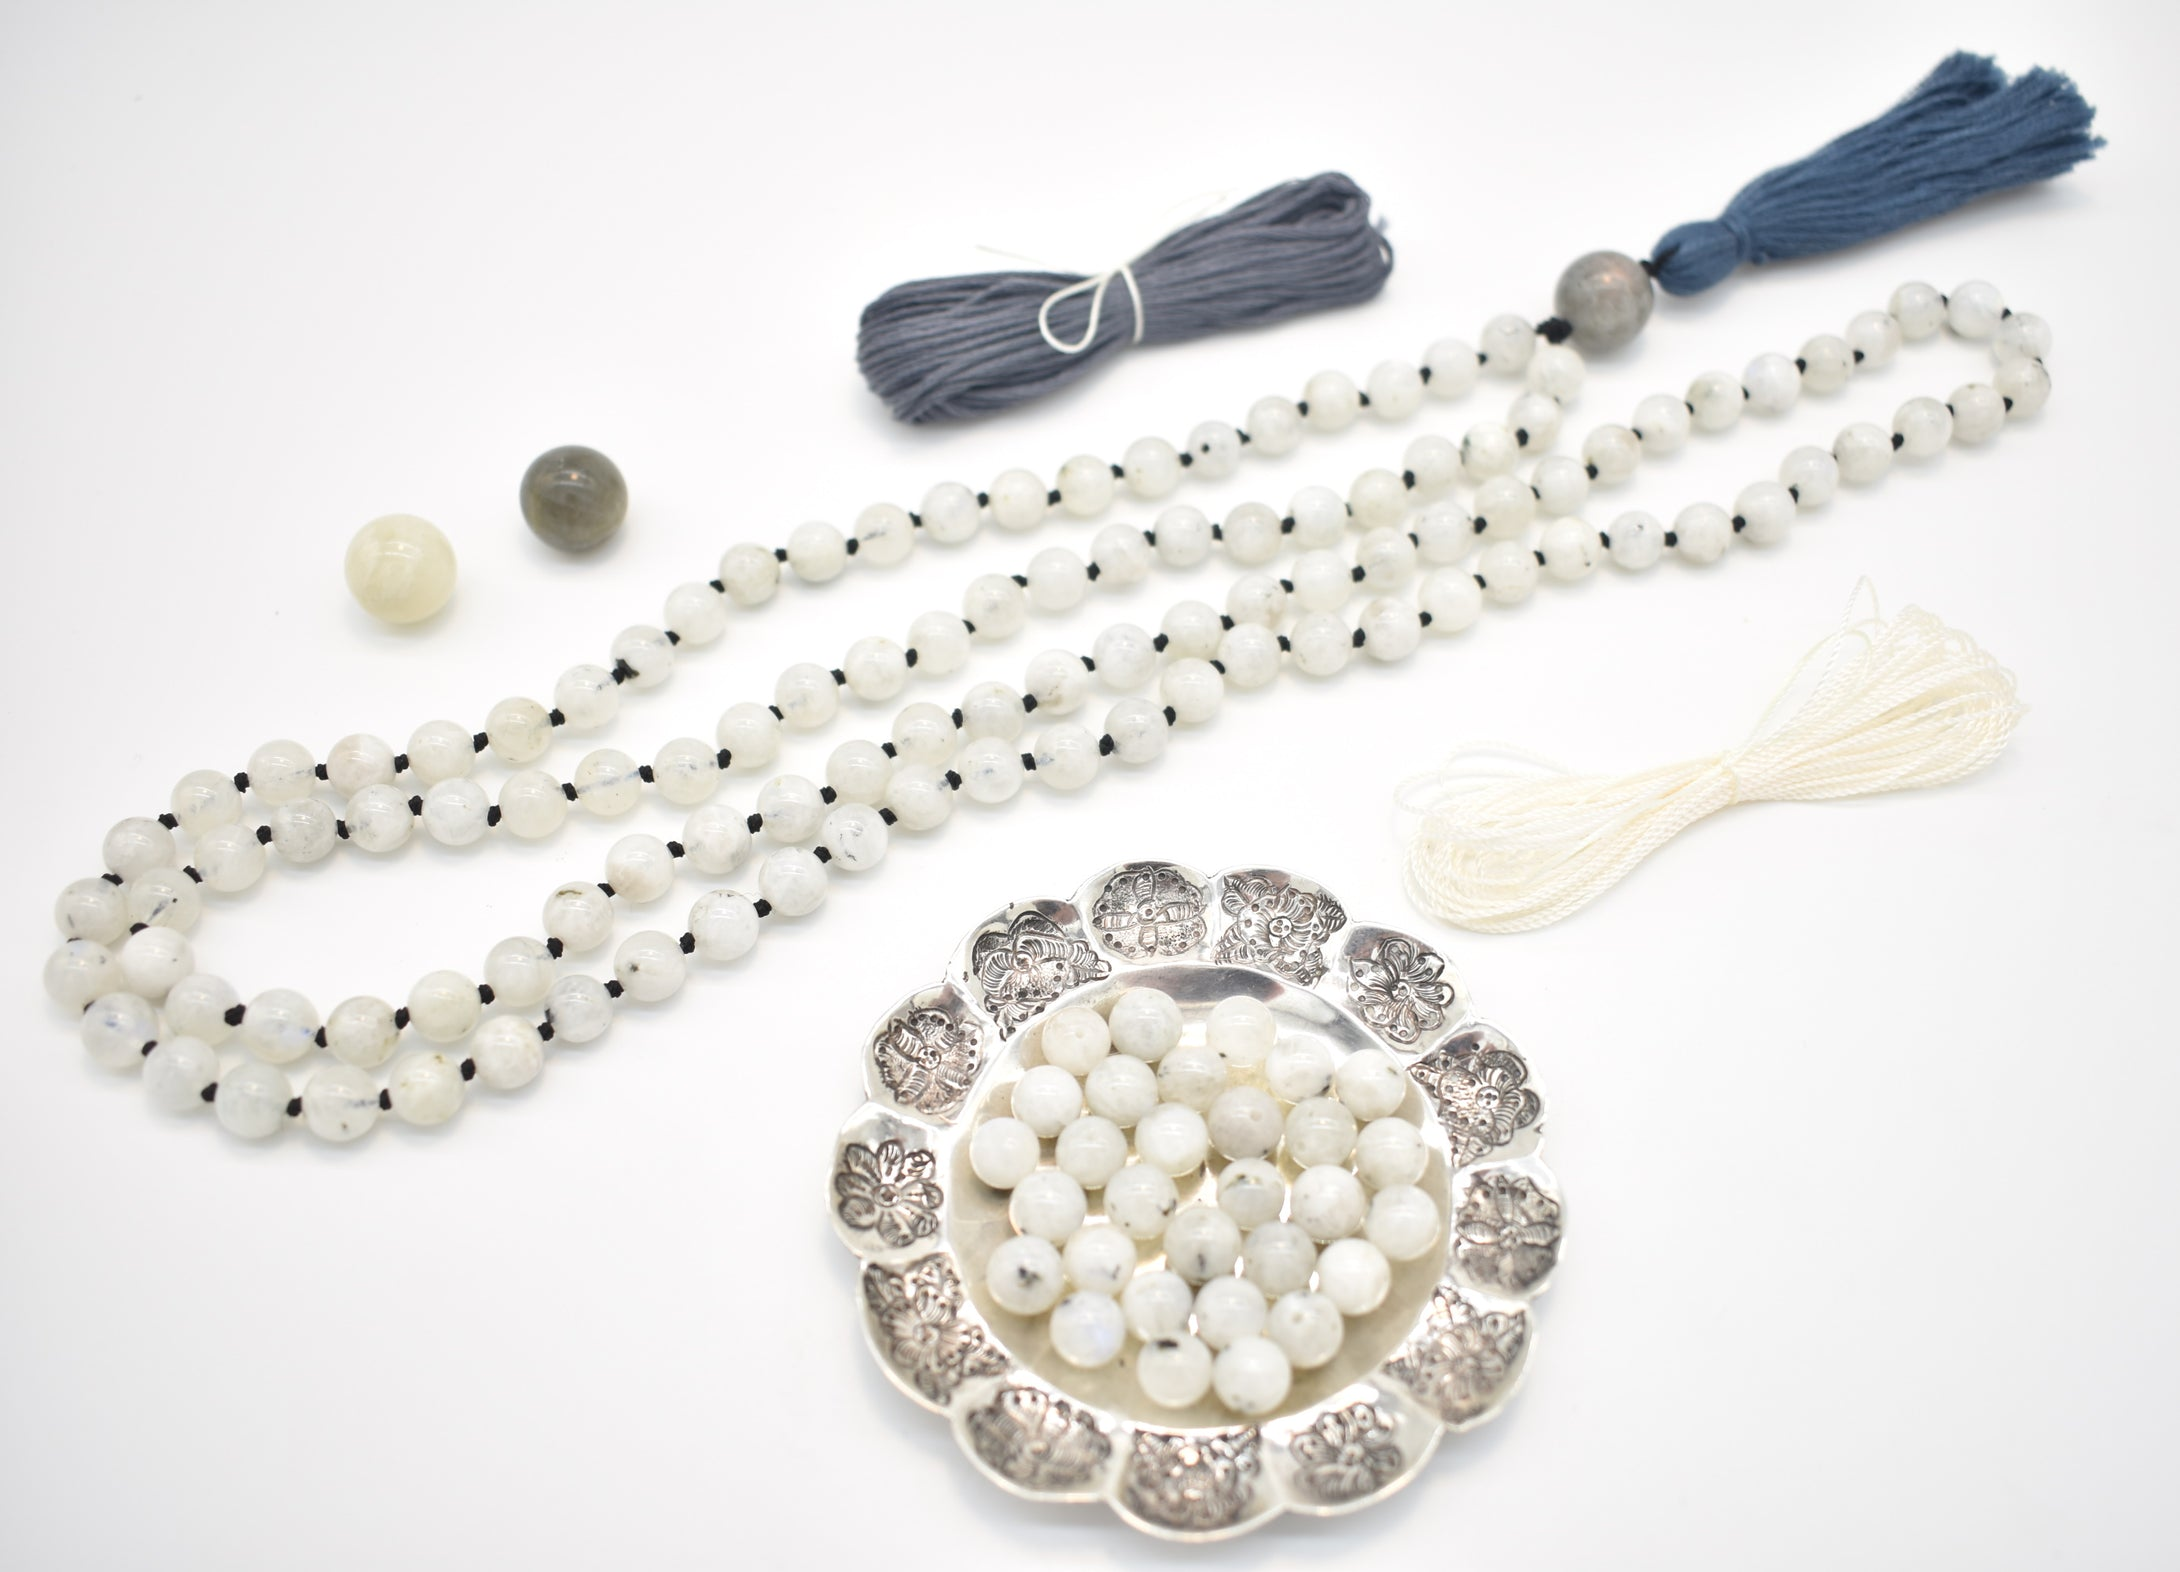 Premium Good Karma Products Moonstone Mala Kit